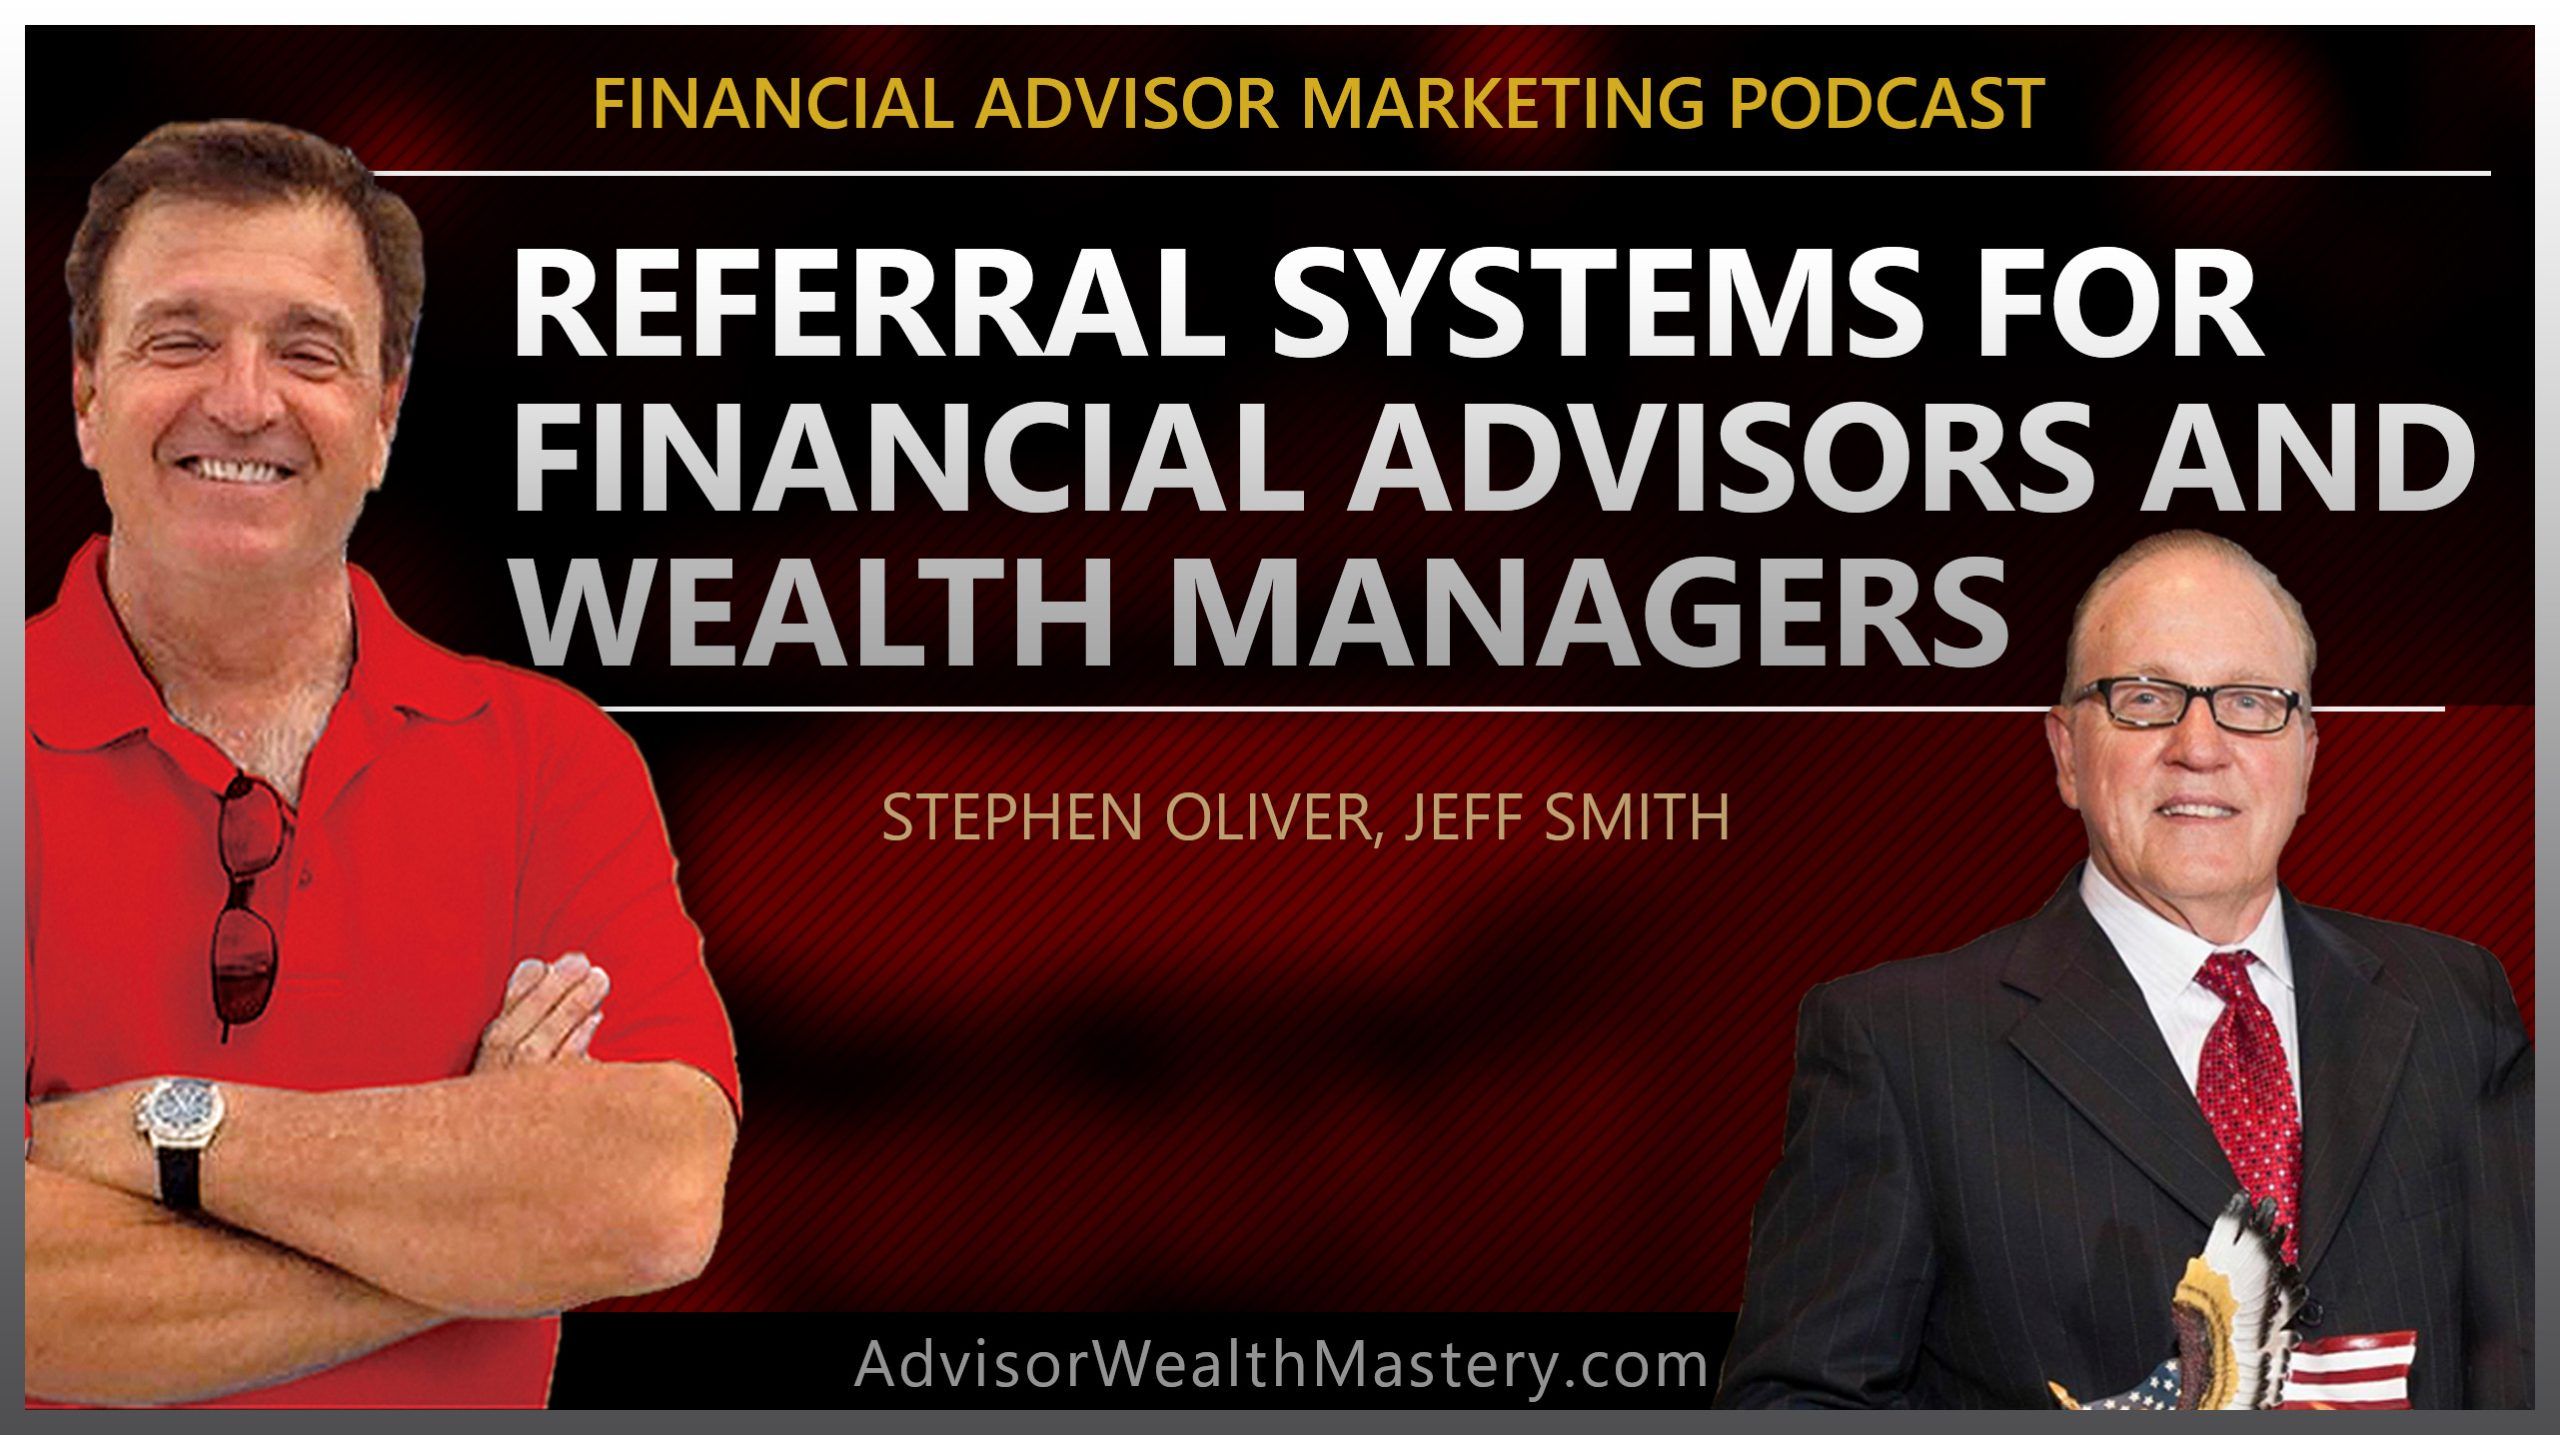 Referral Systems for Financial Advisors and Wealth Managers